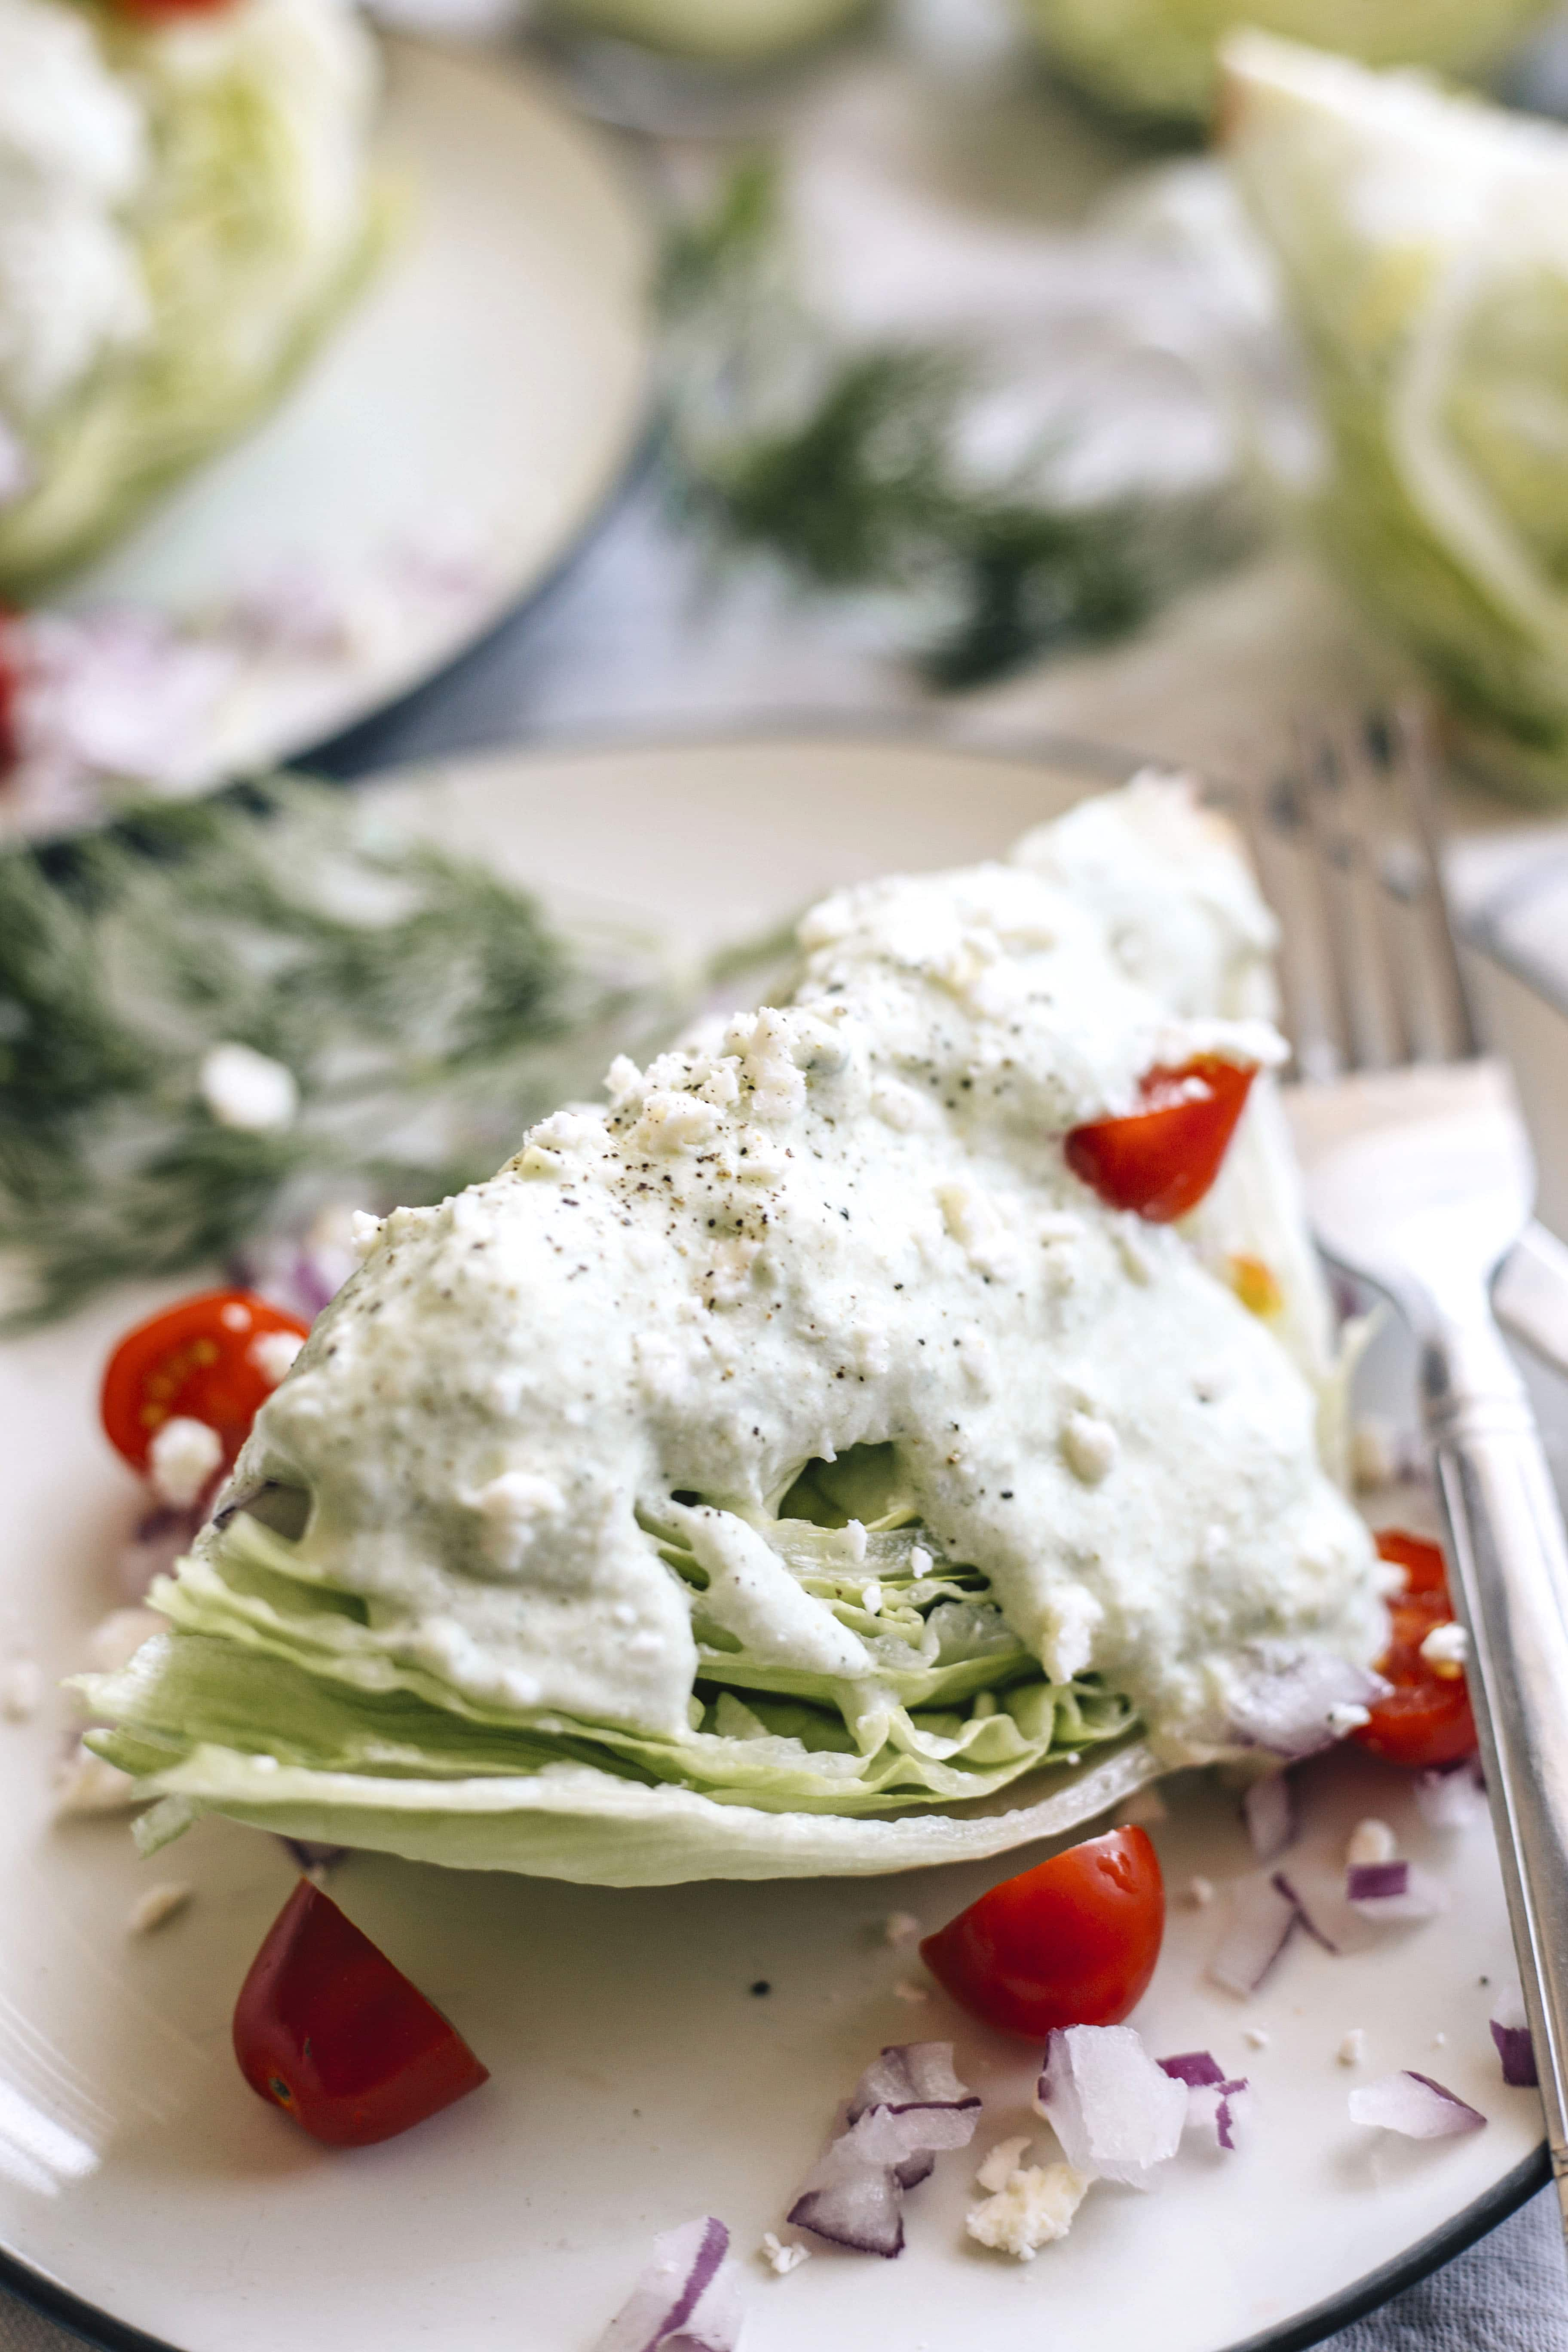 Greek Wedge Salad | A crunchy wedge salad topped with a creamy tzatziki dressing!